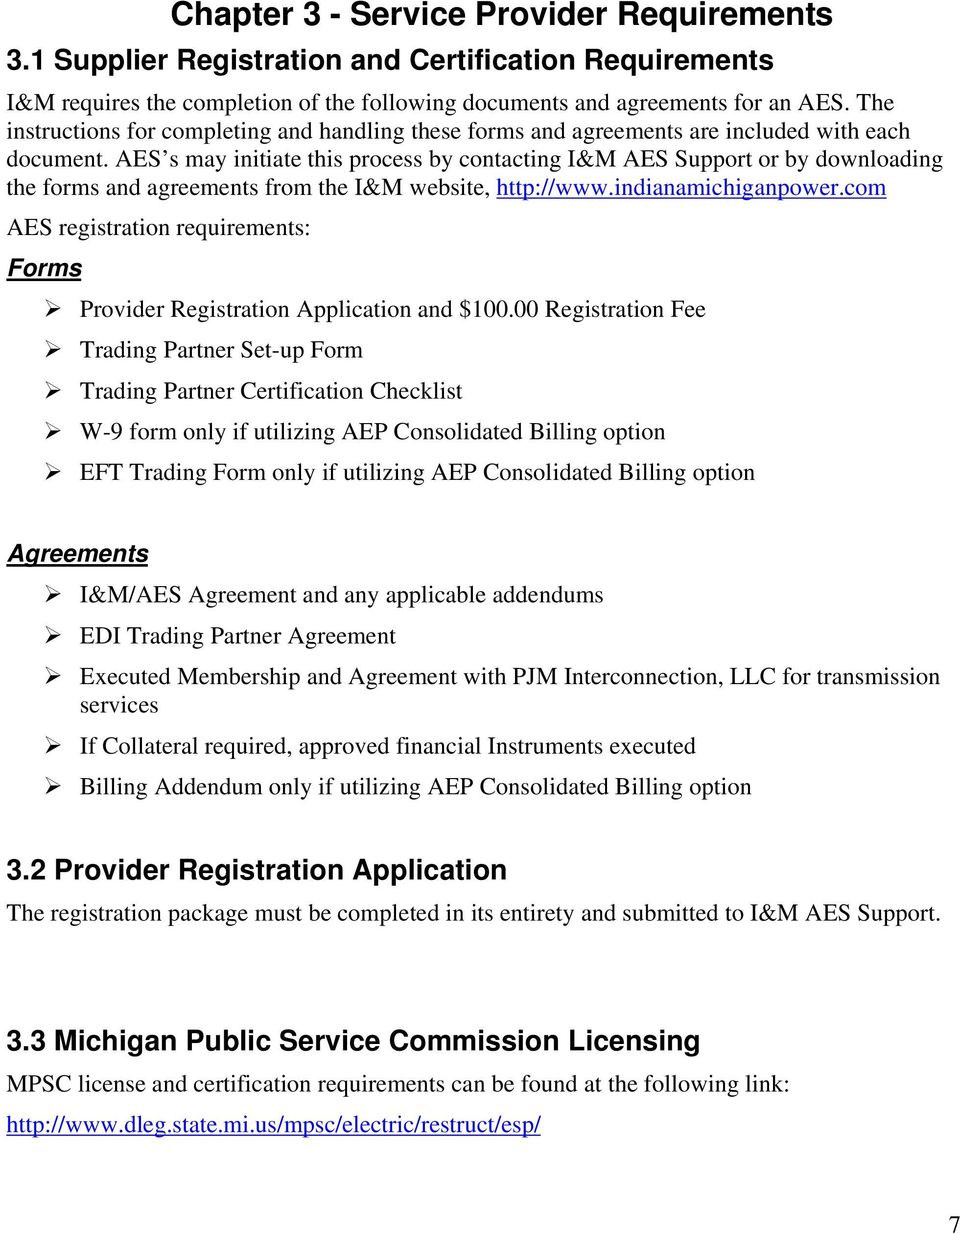 AES s may initiate this process by contacting I&M AES Support or by downloading the forms and agreements from the I&M website, http://www.indianamichiganpower.